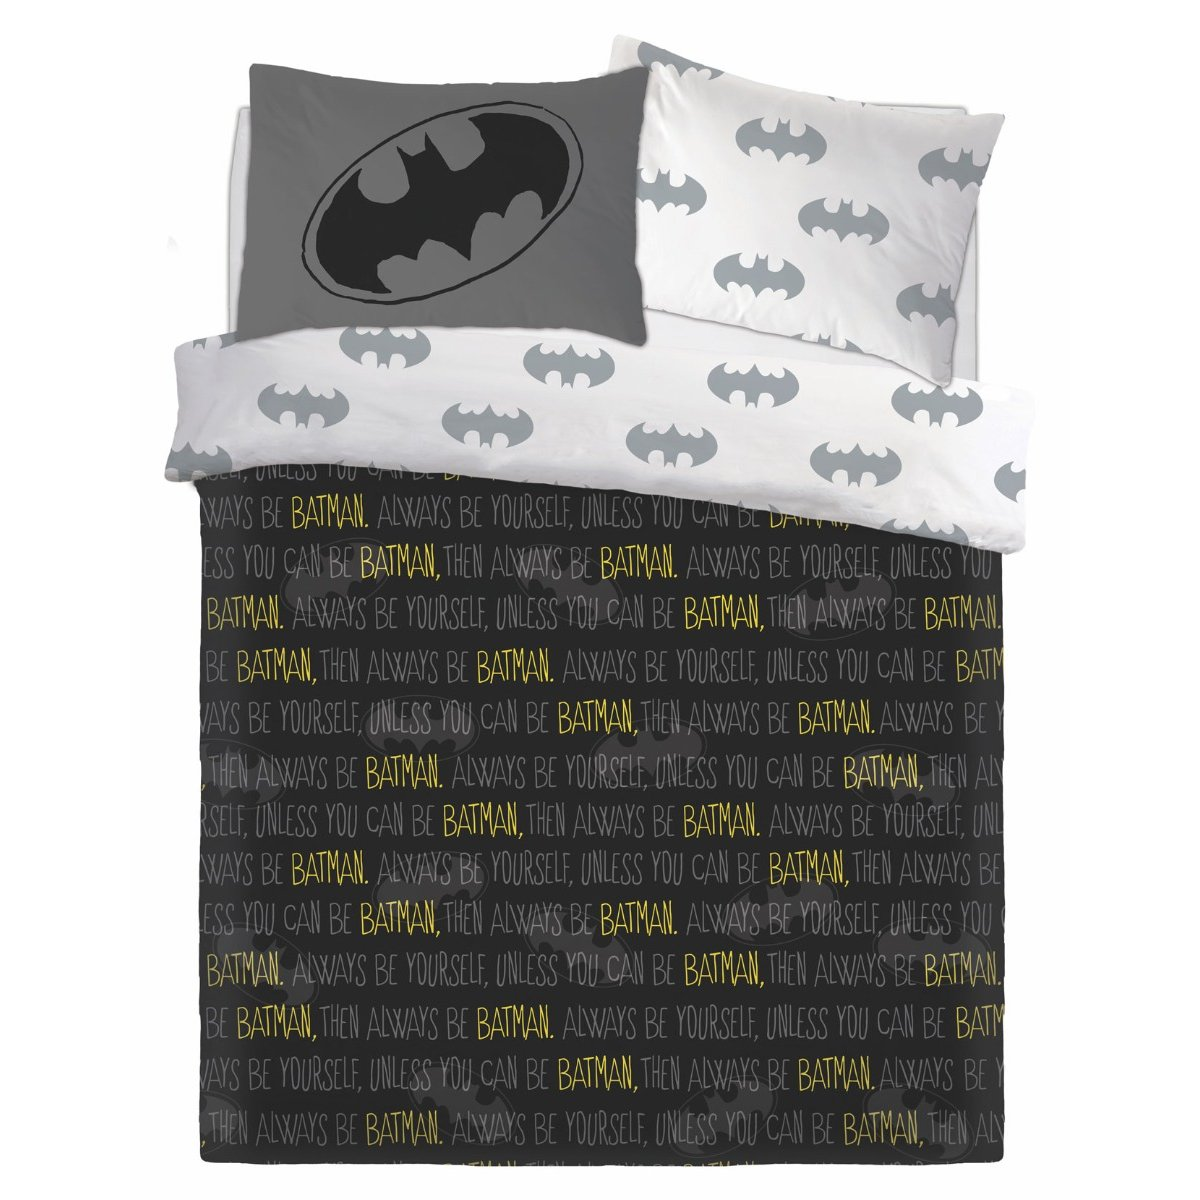 Batman Forever Bedding - Reversible Duvet Cover and Pillowcase Set